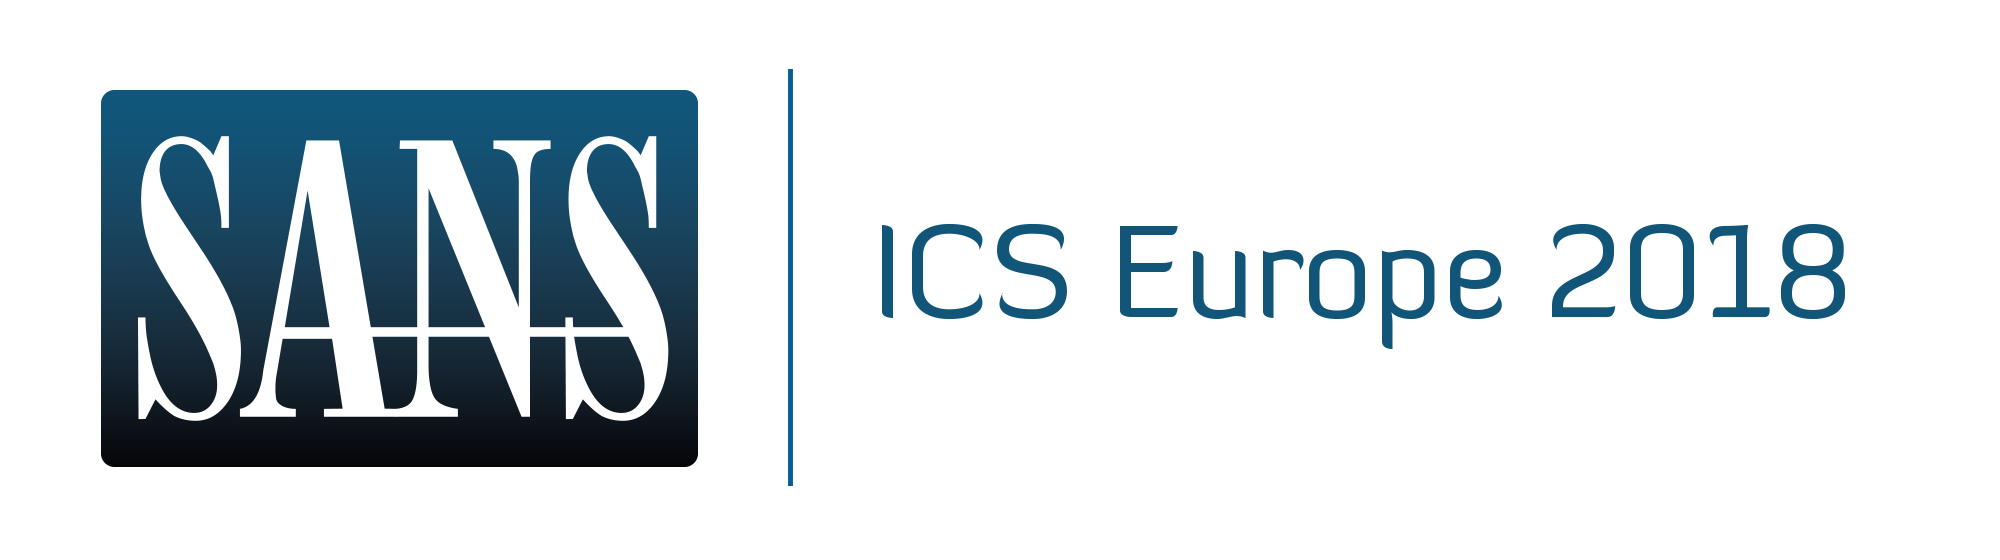 SANS ICS Europe Summit 2018